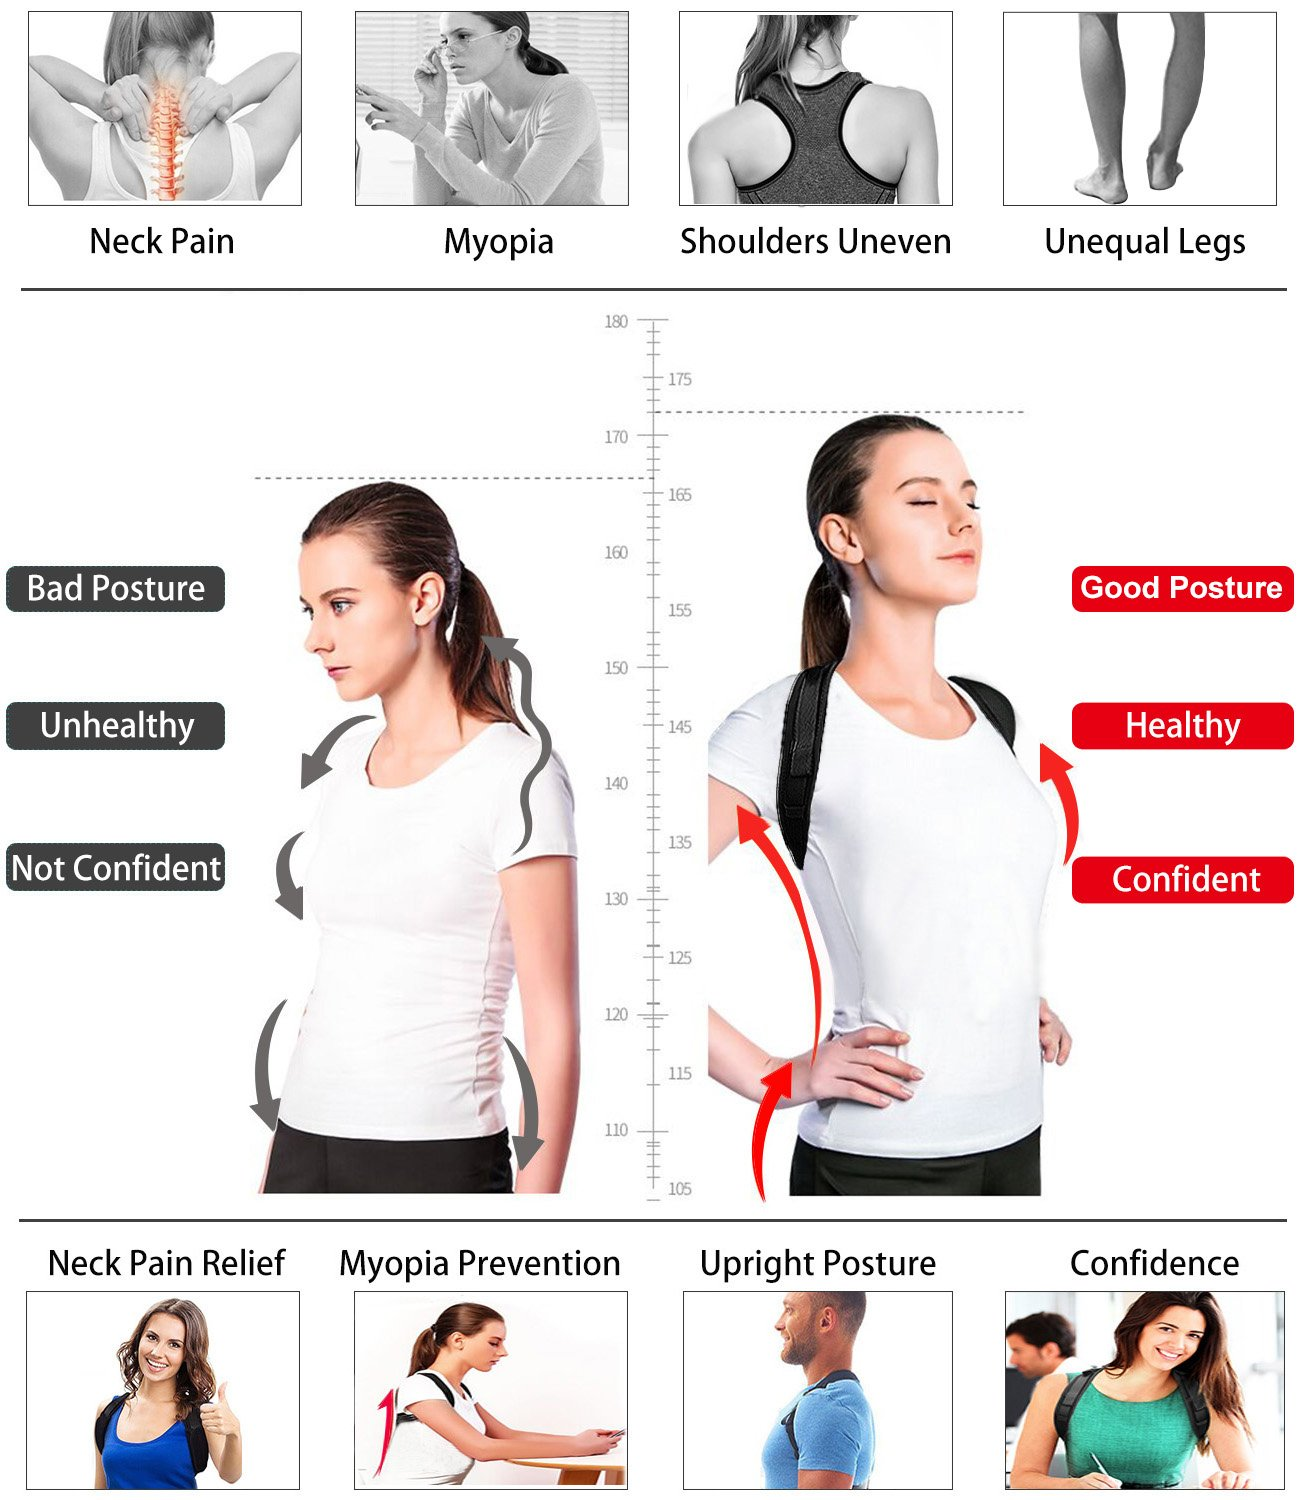 CMflower Posture Corrector 2018 New Easy Adjust Buckle Design Unnoticeable Back Brace with Yoga Strap and Carry Bag Breathable Soft Material for Men Women Kids to Correct Hunching Slouch Bad Posture by CMflower (Image #4)